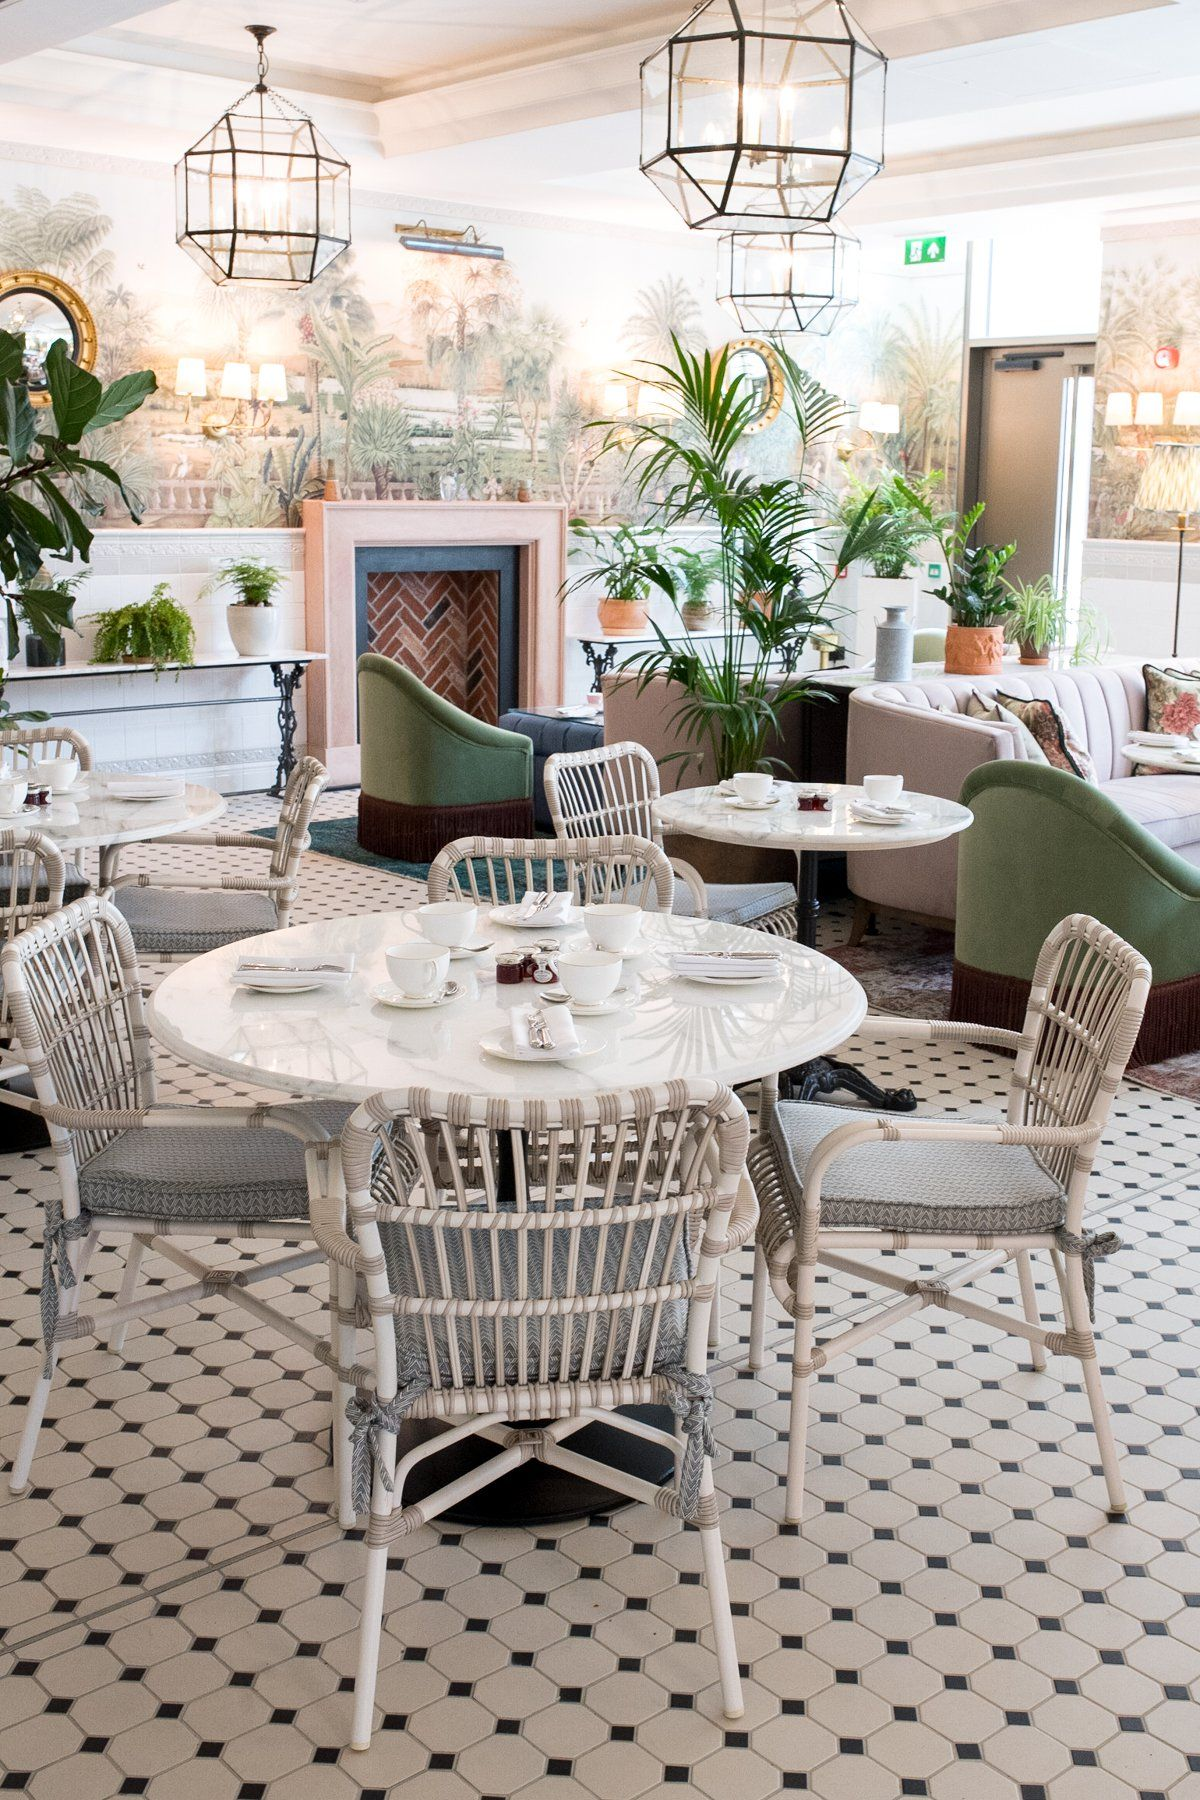 Interiors I Love Afternoon Tea At The Tamburlaine Hotel In